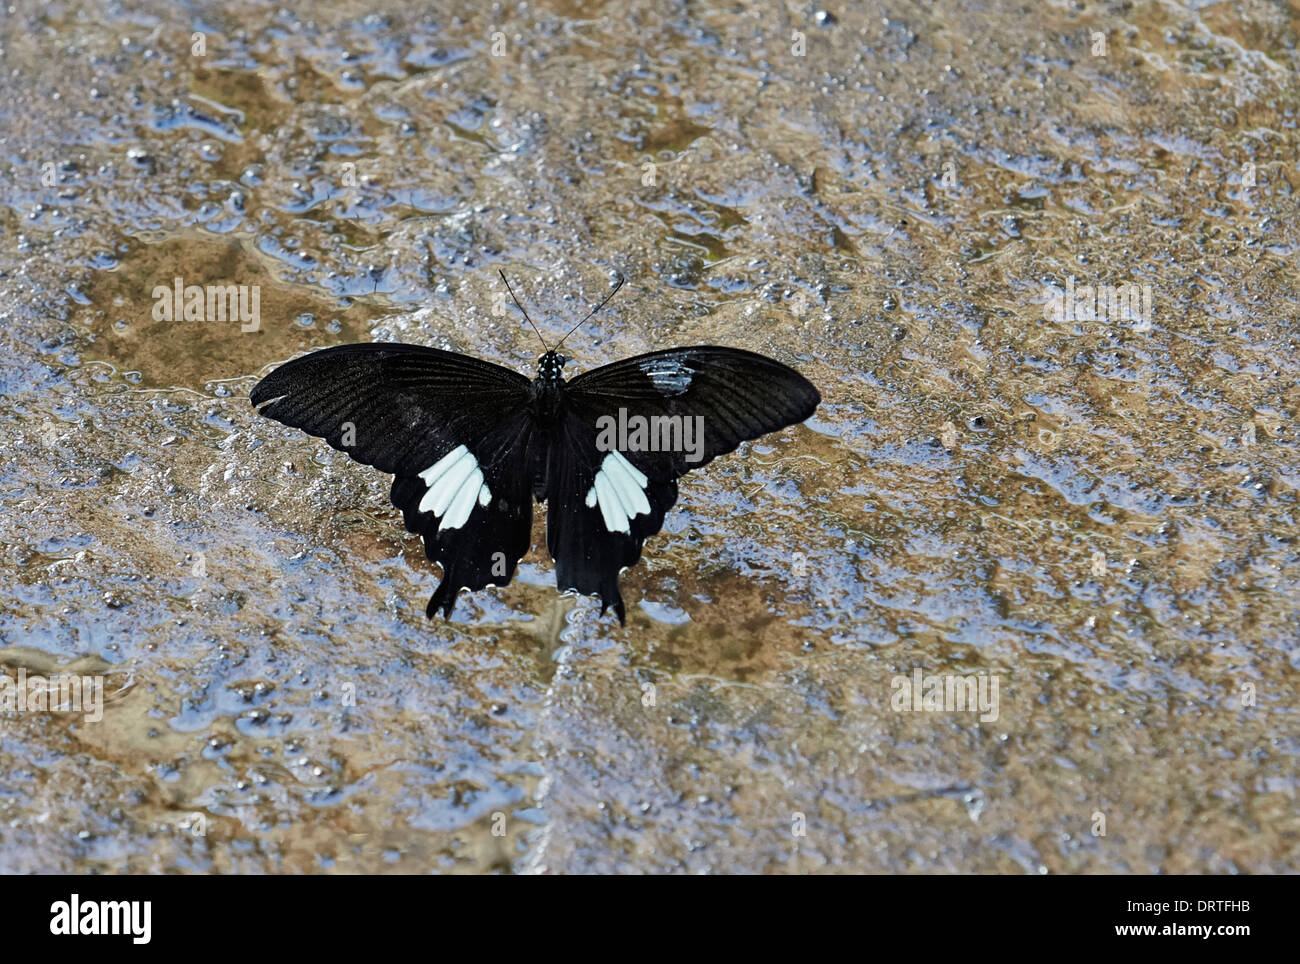 Black and White Helen butterfly Papilio nephelus sunatus from the Papilionidae family Dorsal or open view Australasia and India - Stock Image